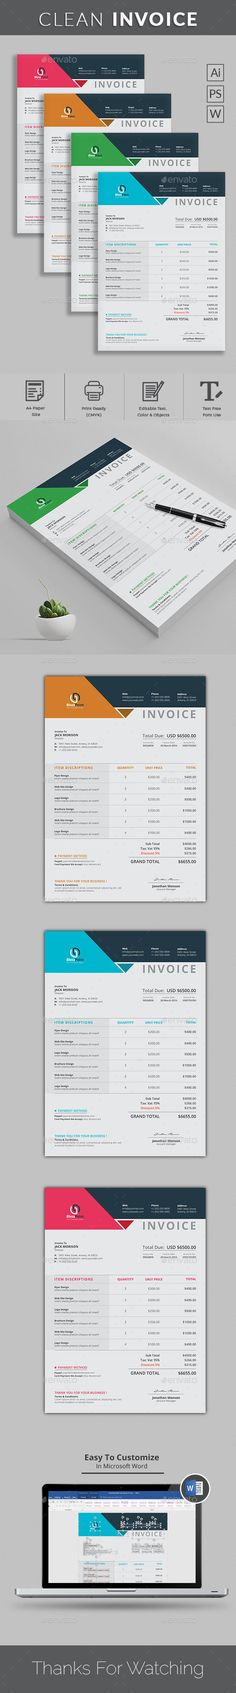 Invoice - create your own invoices